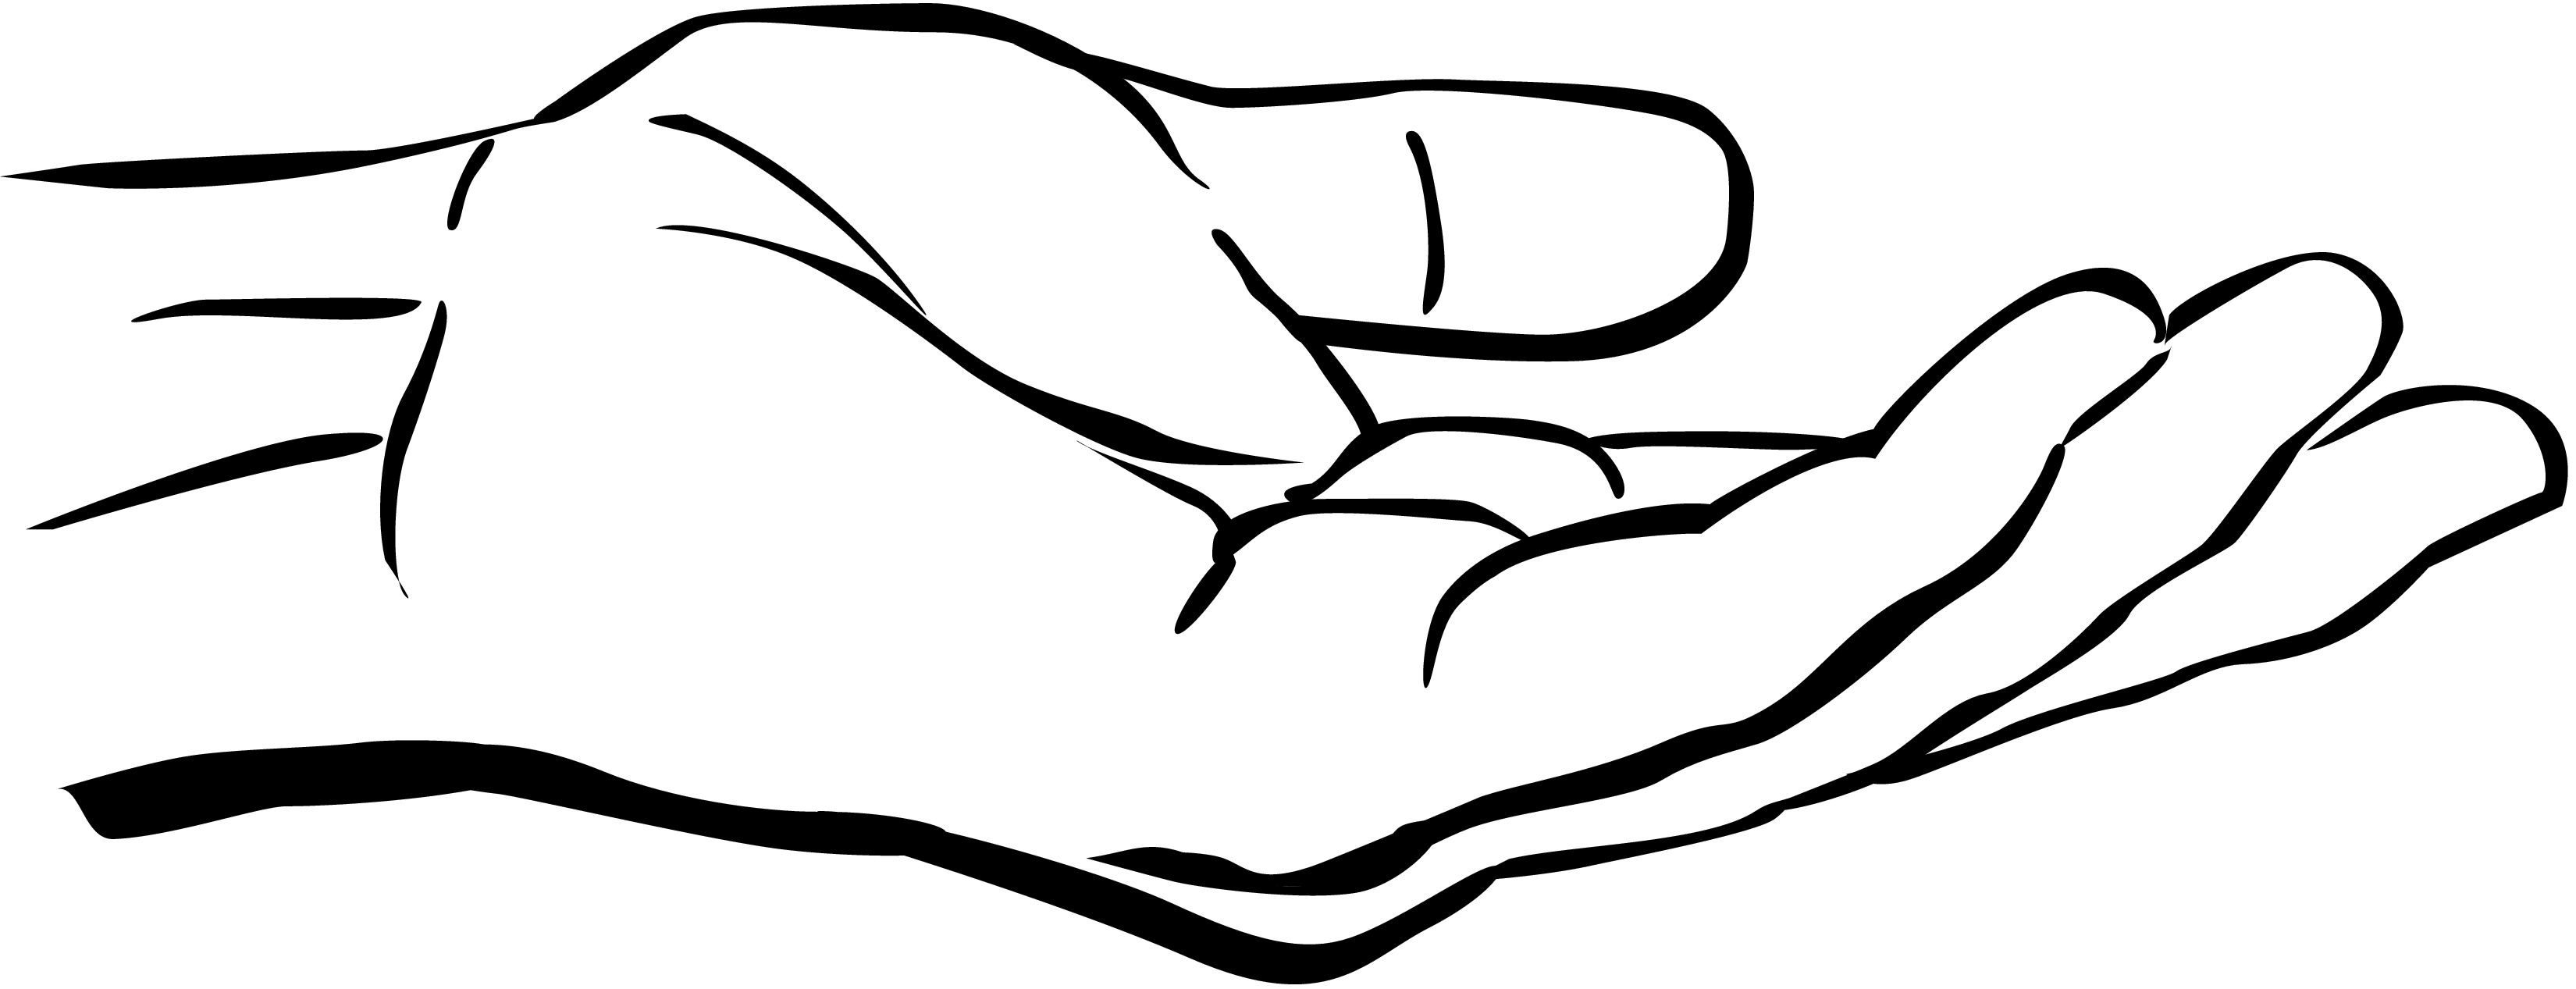 3300x1267 Giving Hands Clipart Free Images 3